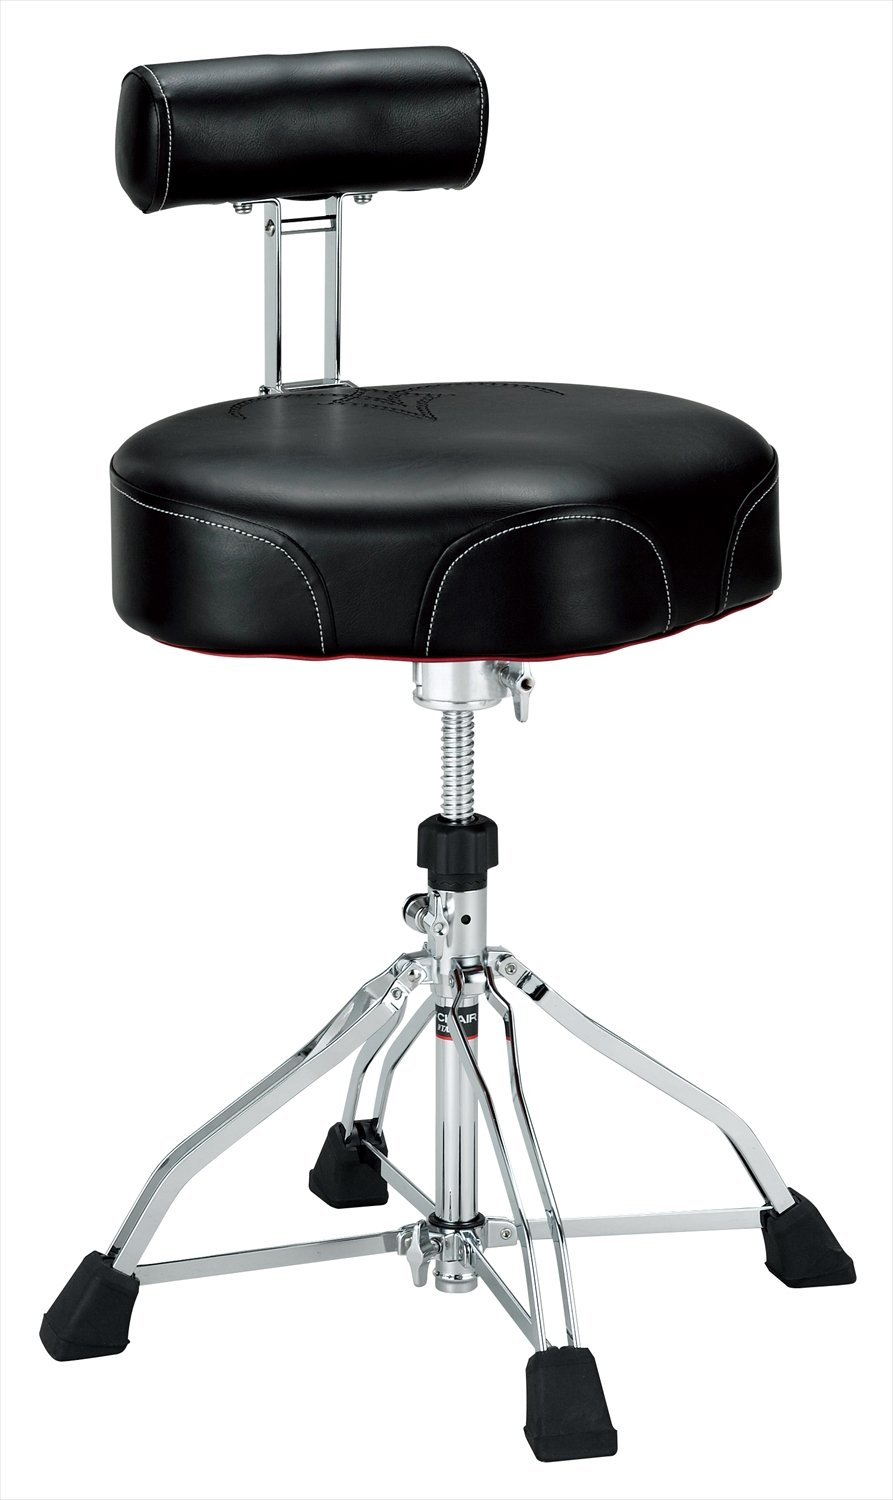 Amazon.com Tama 1st Chair Ergo-Rider Drum Throne with Backrest Black Musical Instruments  sc 1 st  Amazon.com & Amazon.com: Tama 1st Chair Ergo-Rider Drum Throne with Backrest ... islam-shia.org